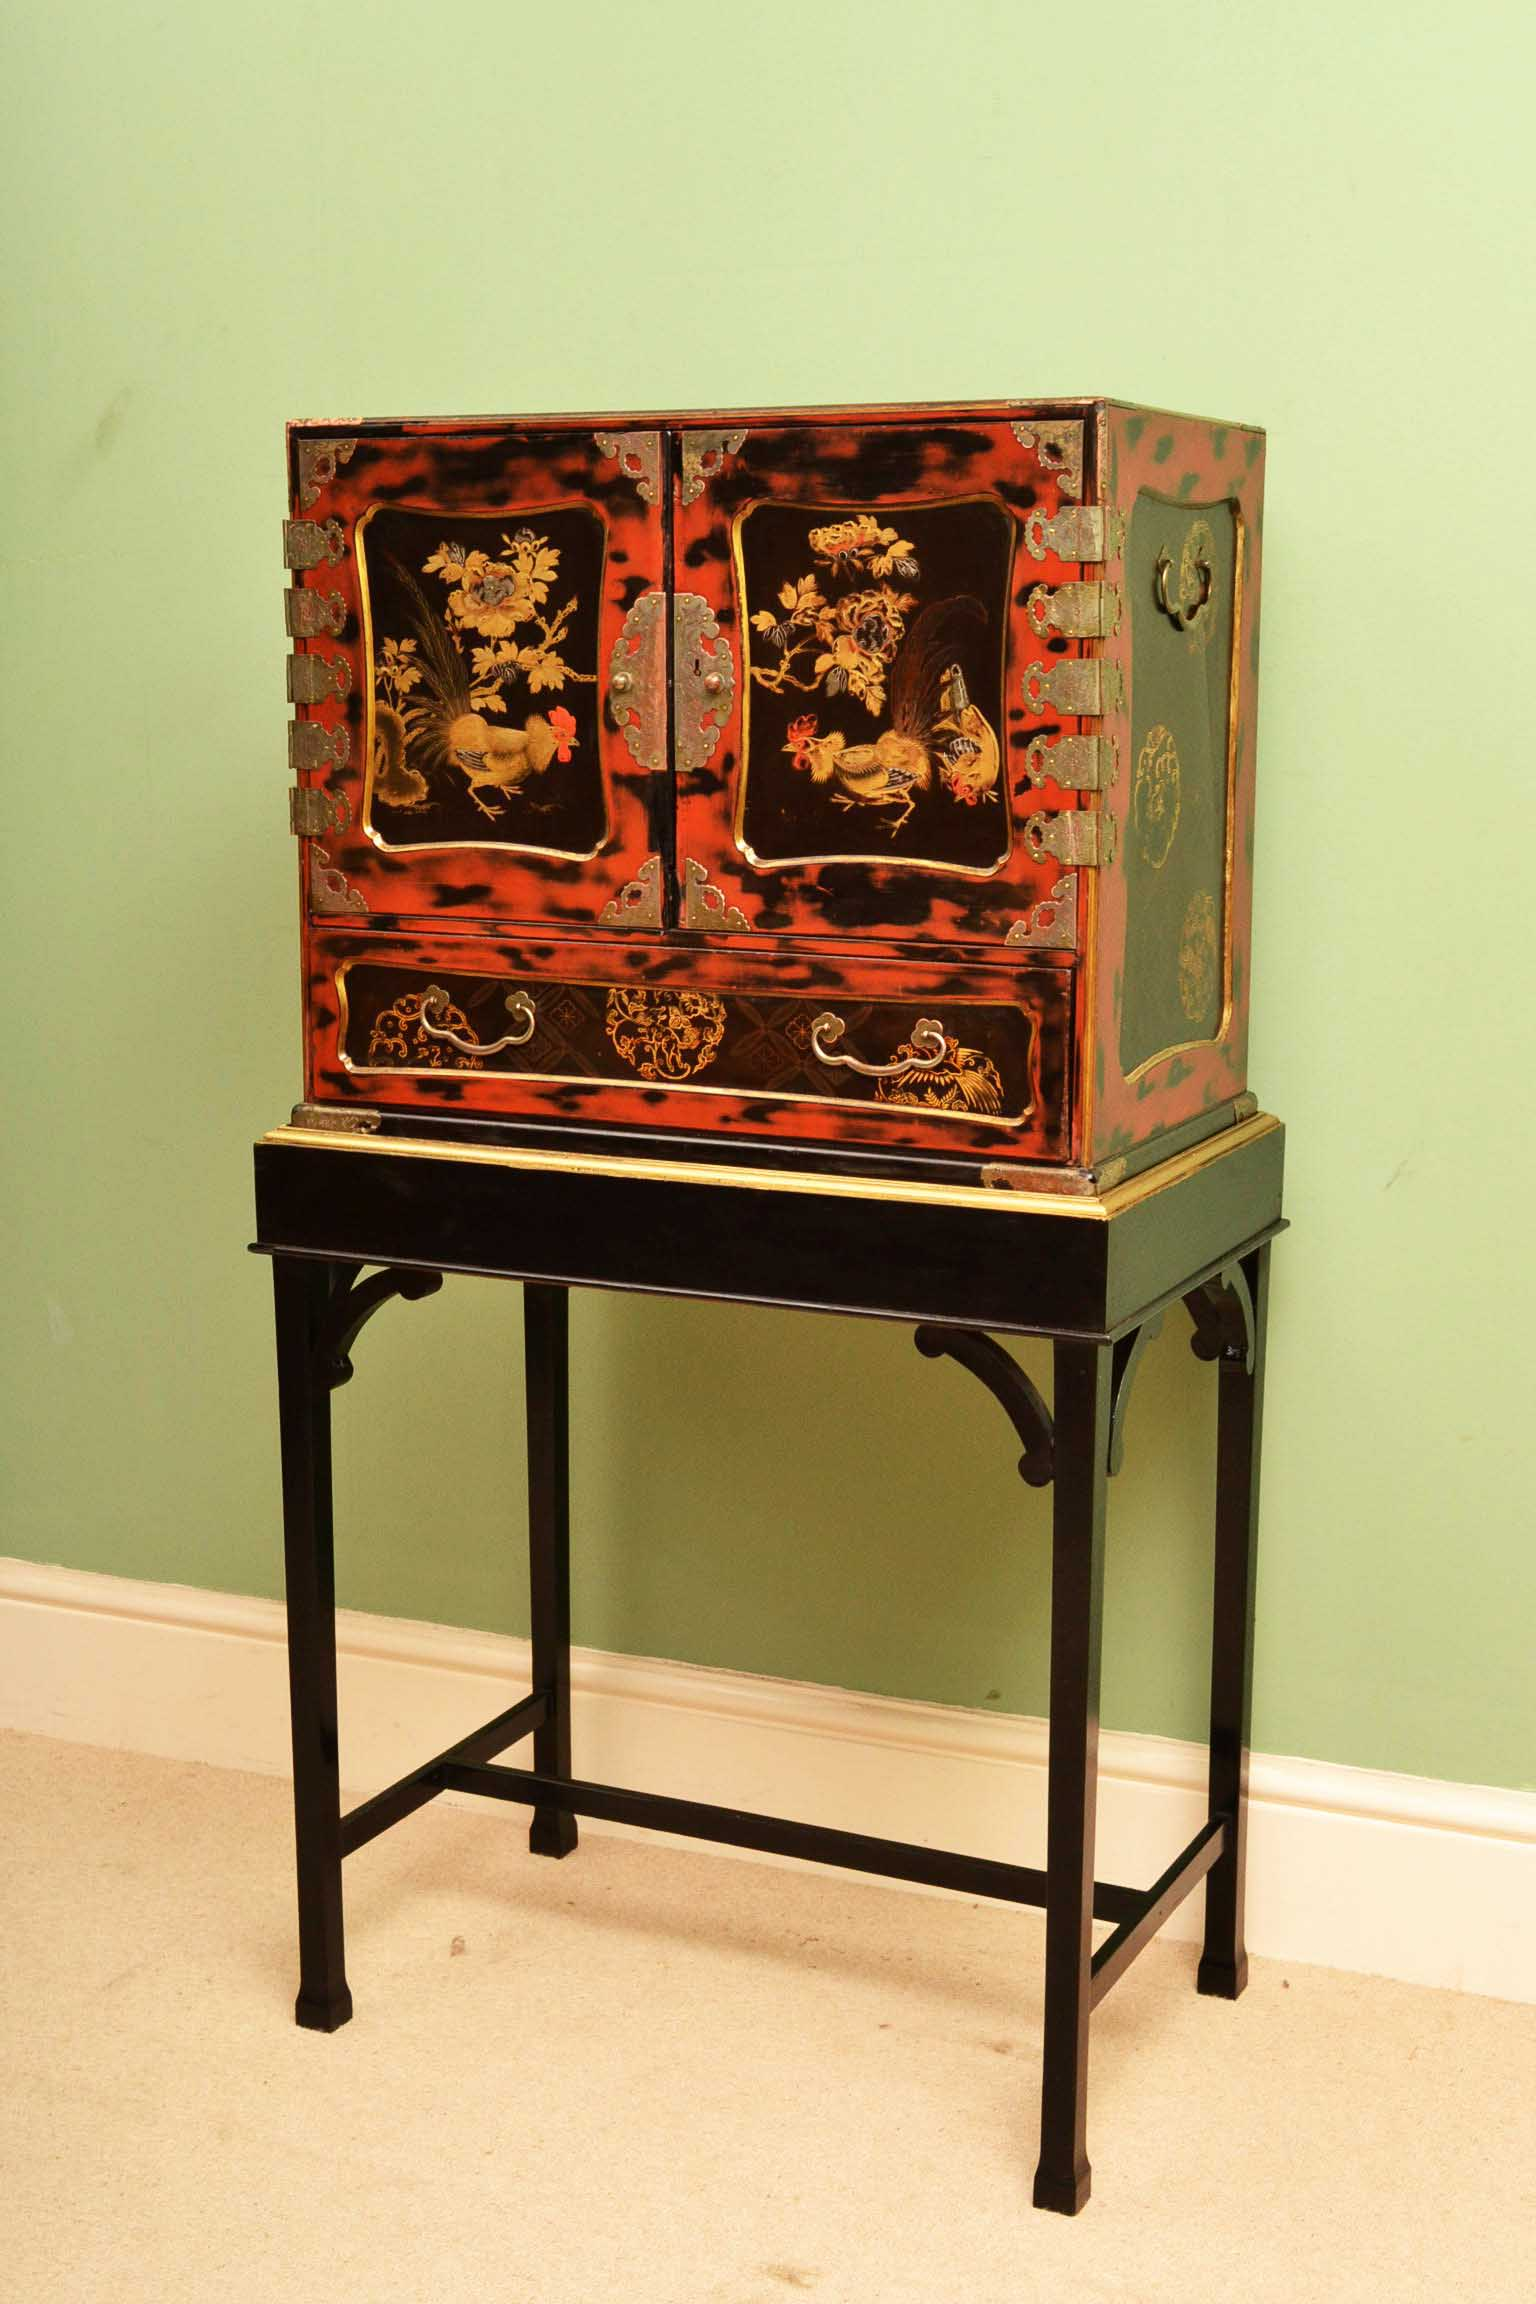 - Antique Japanese Lacquered Cabinet On Stand C1900